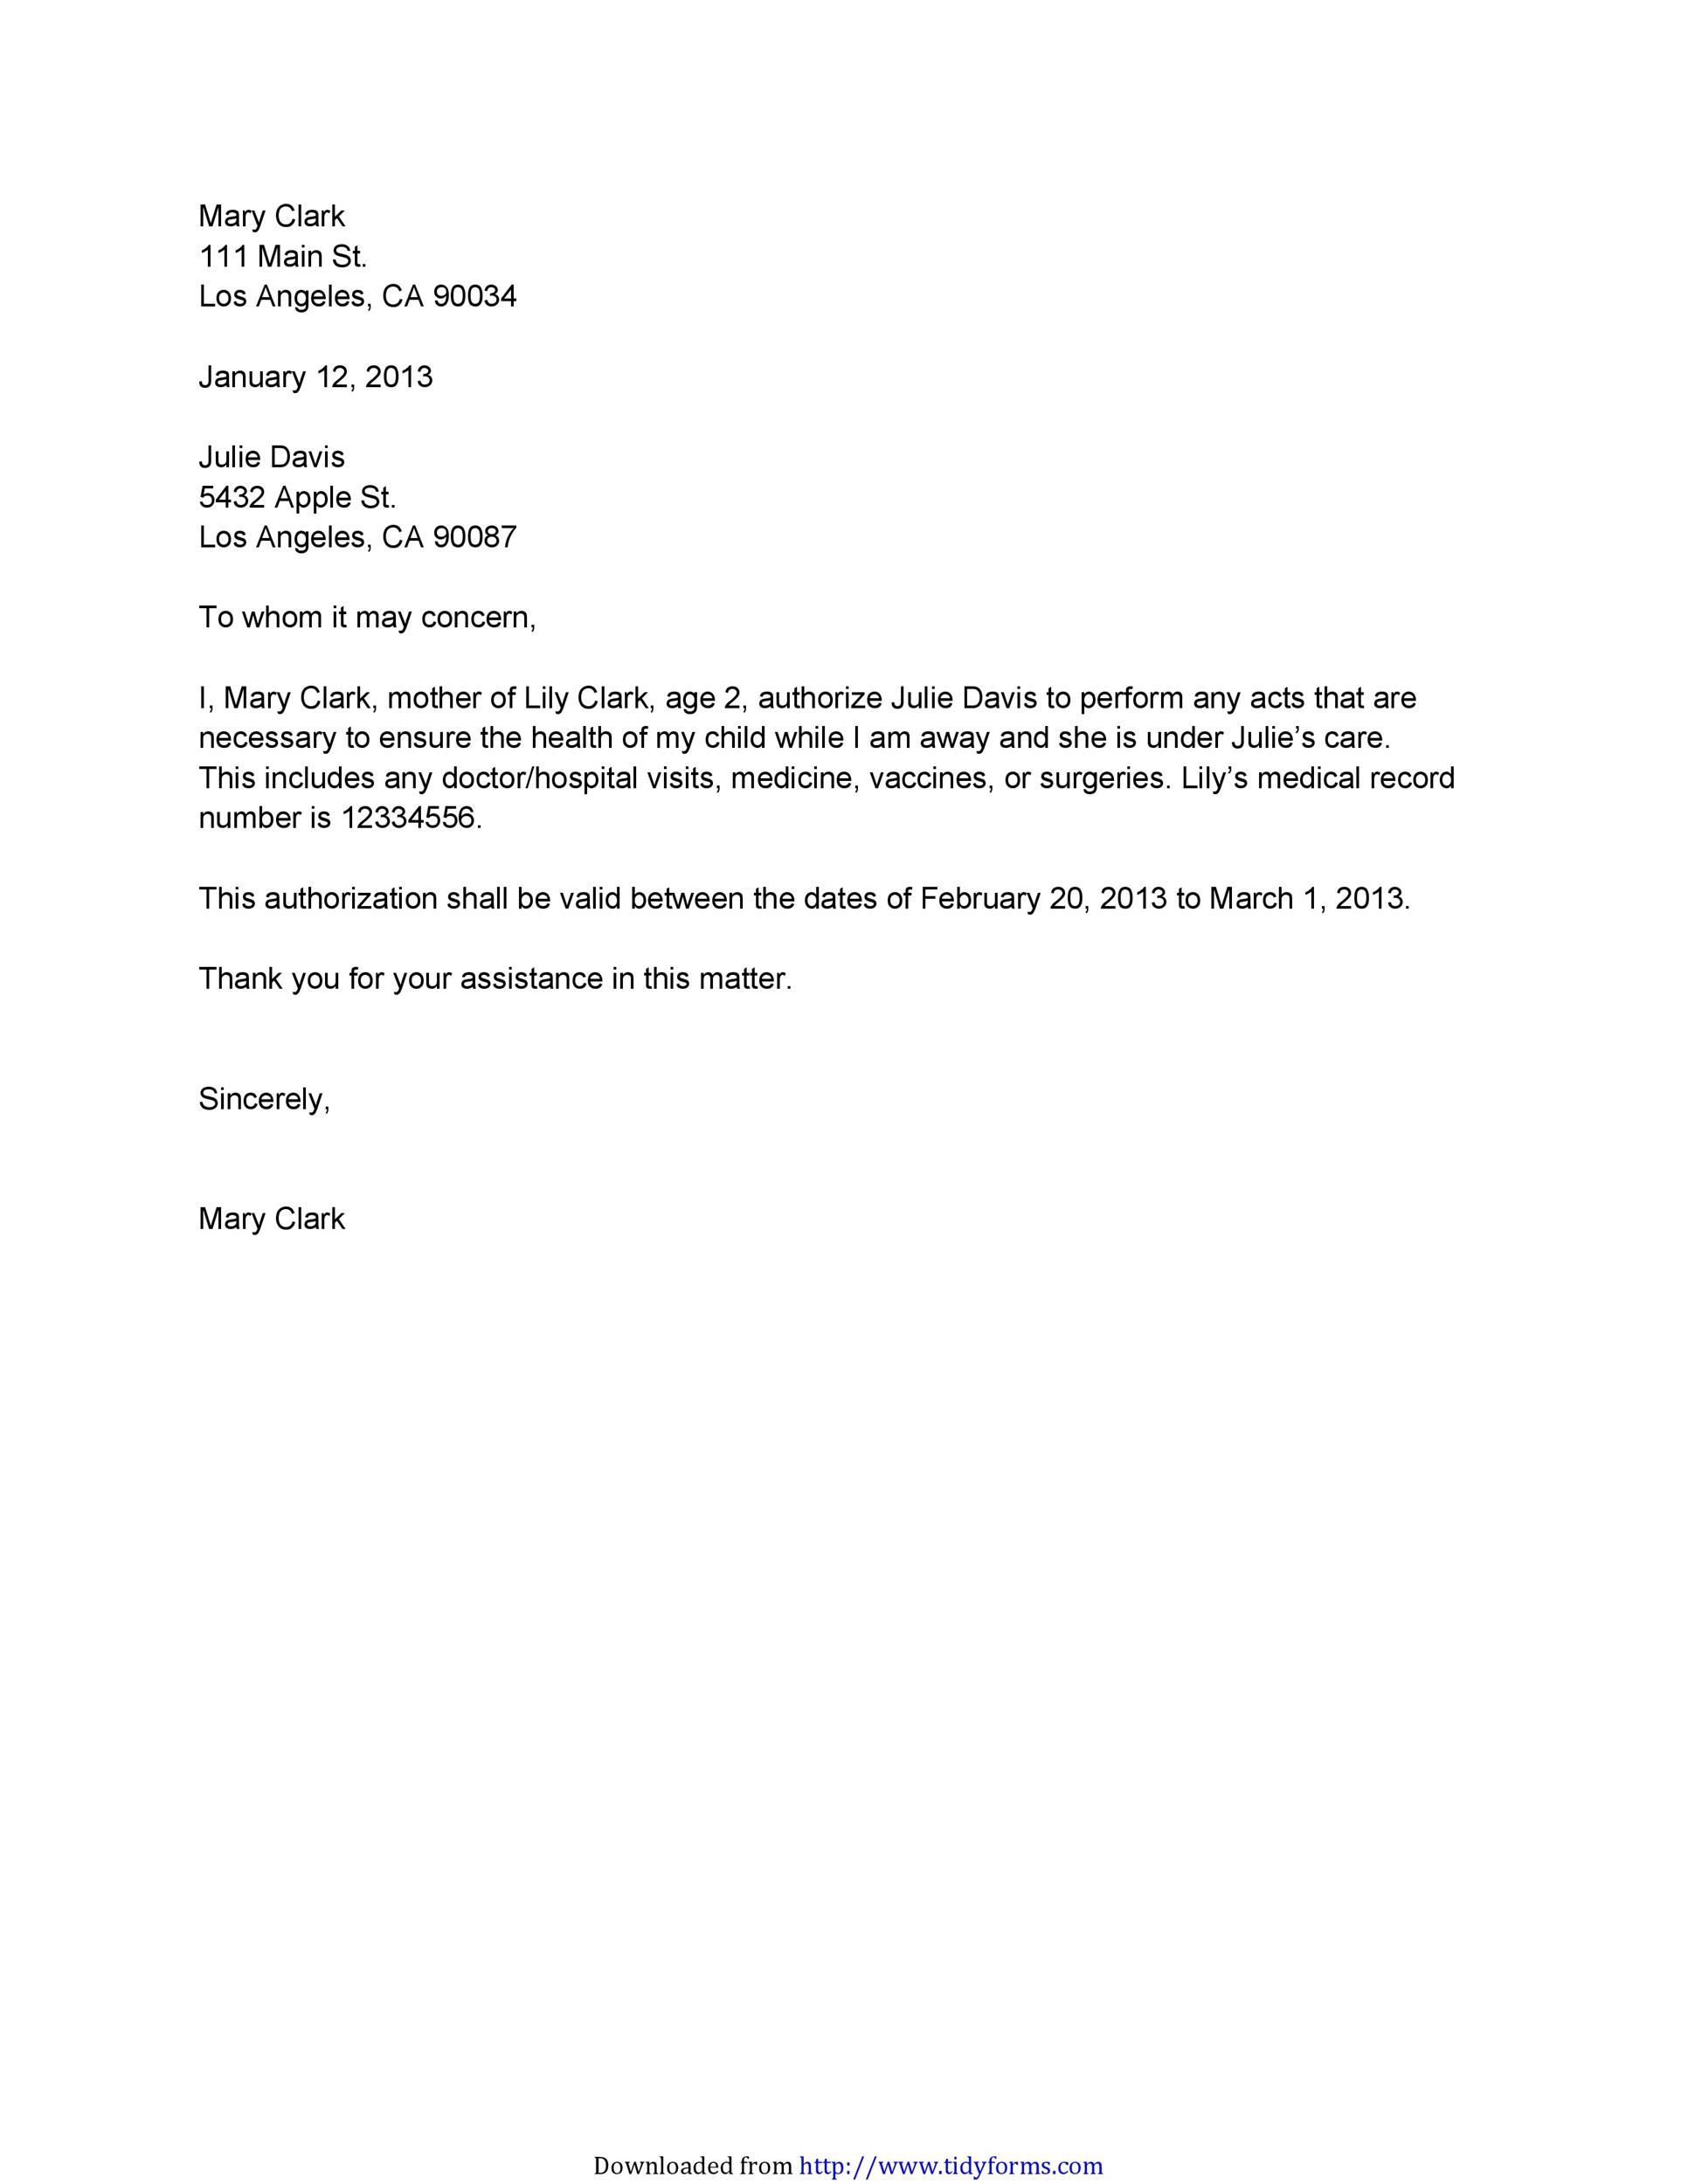 Authorization Letter 37